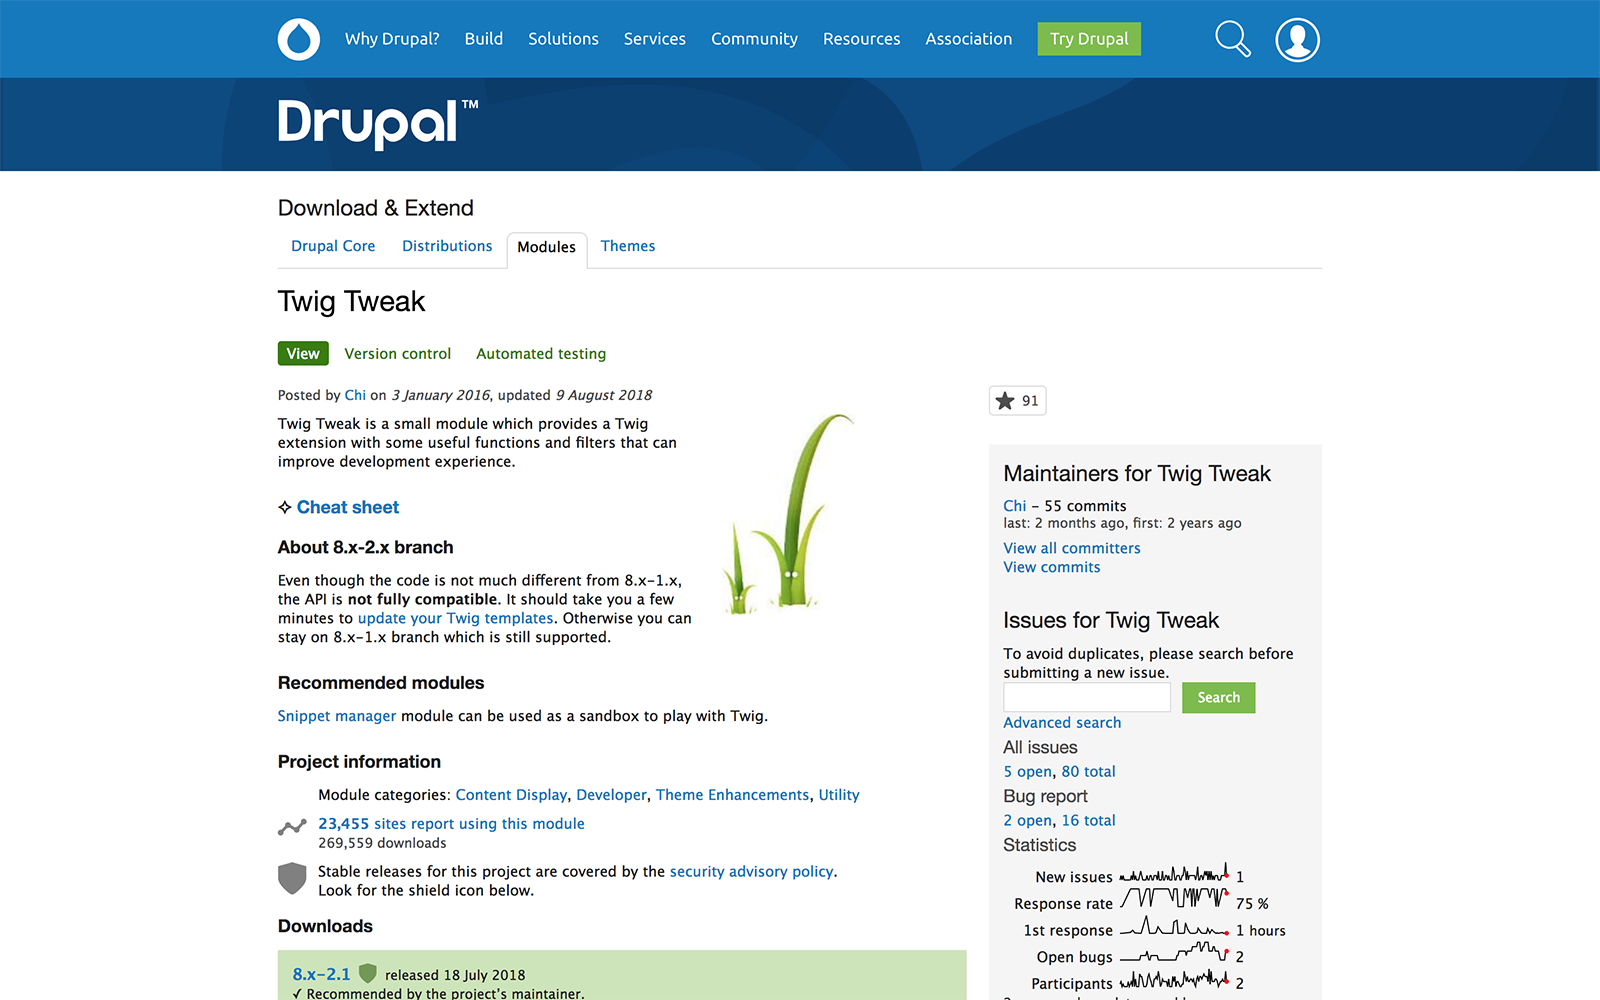 The Drupal splash page for the Twig Tweak module.